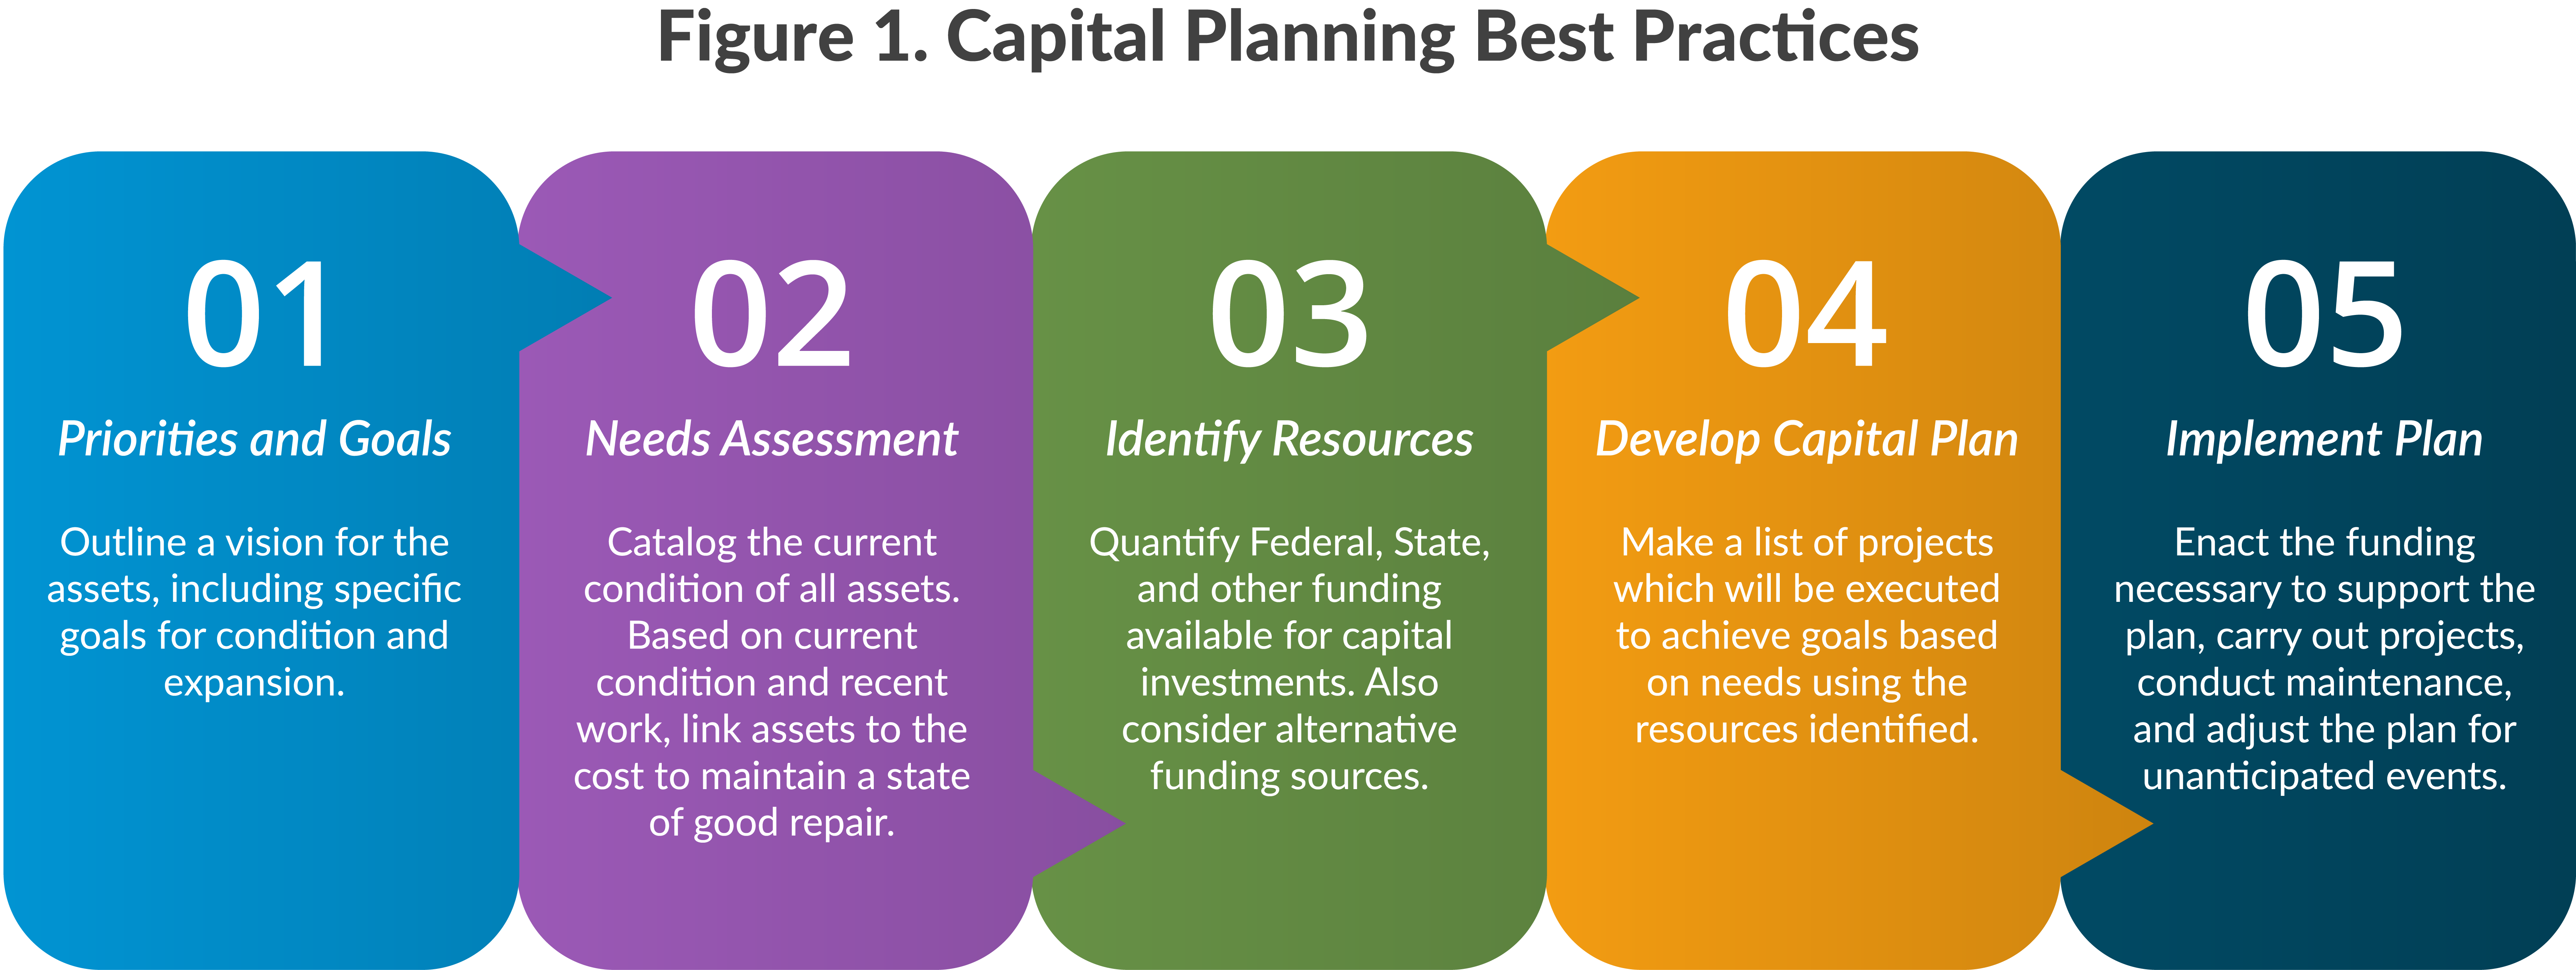 Figure 1. Capital Planning Best Practices